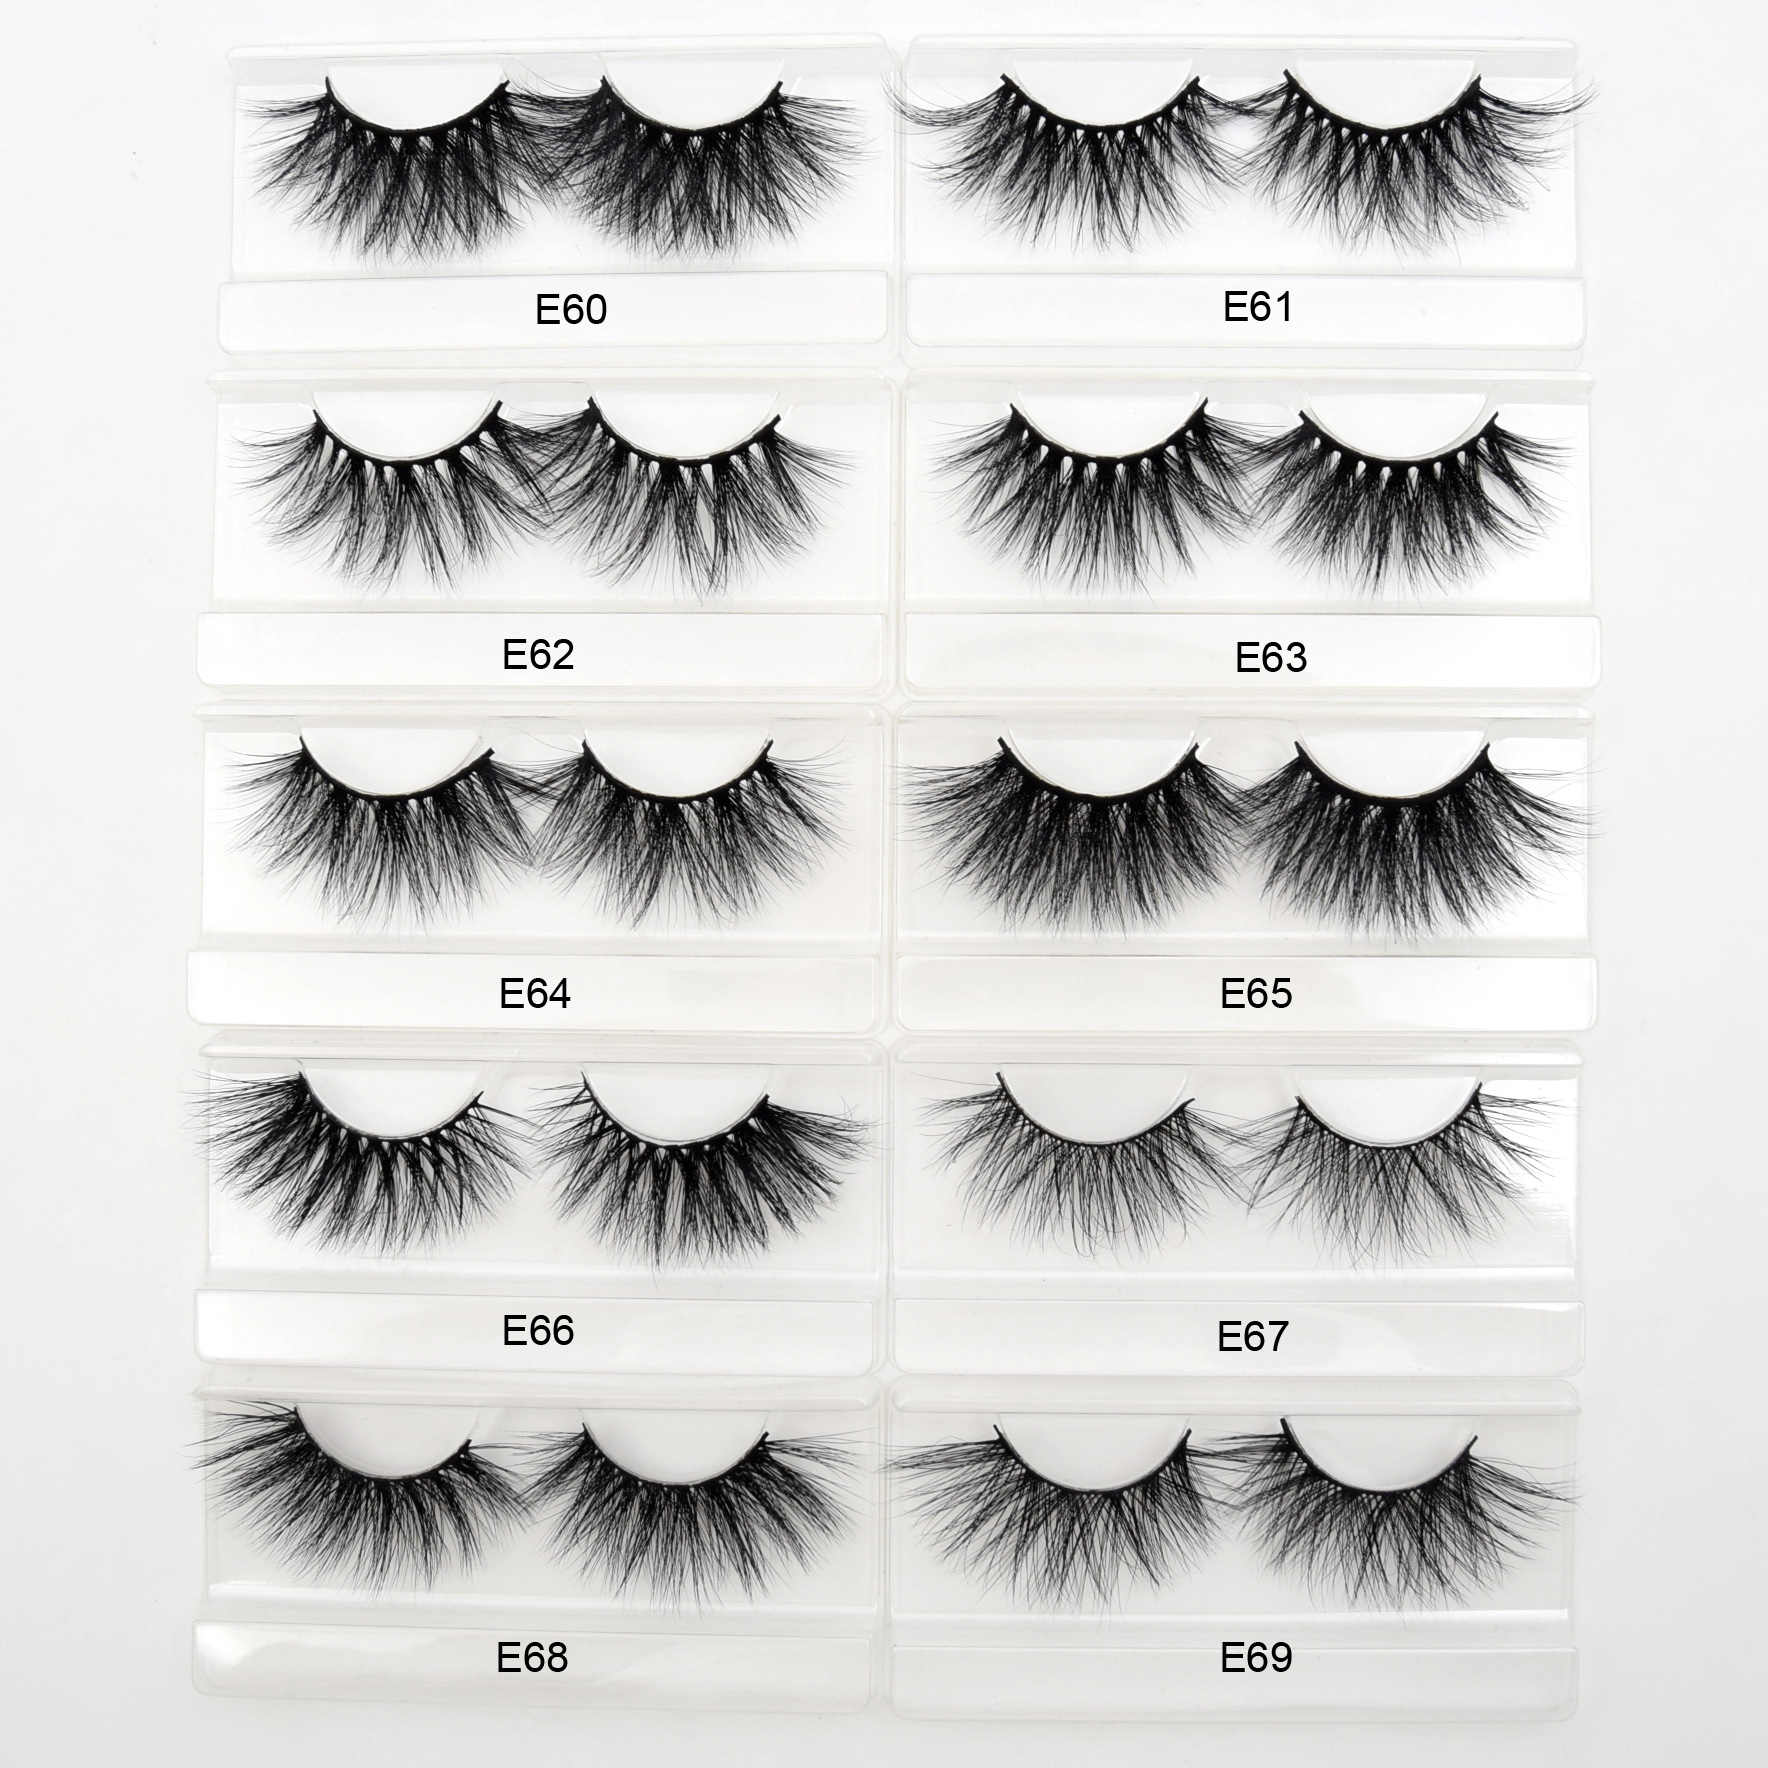 fb226afc52d ... Visofree Mink Eyelashes 25mm Lashes Dramatic 3D Mink Lashes False  Eyelashes Makeup Soft Eyelash Extension Long ...